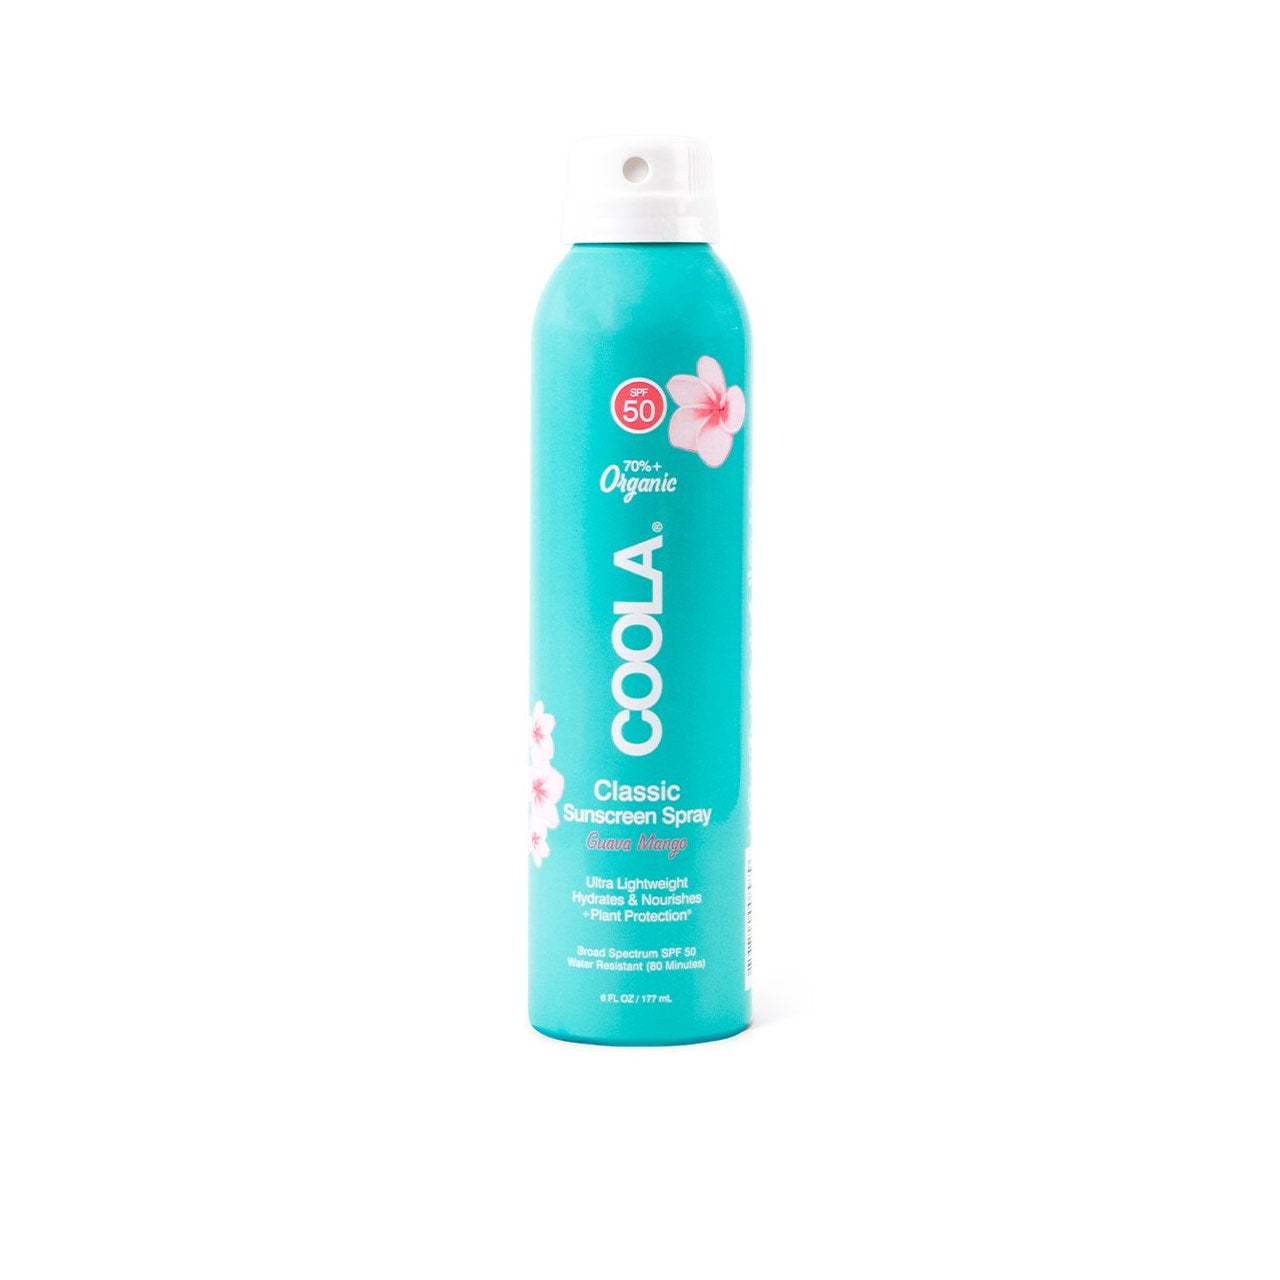 COOLA Classic SPF50 Guava Mango Sunscreen Spray